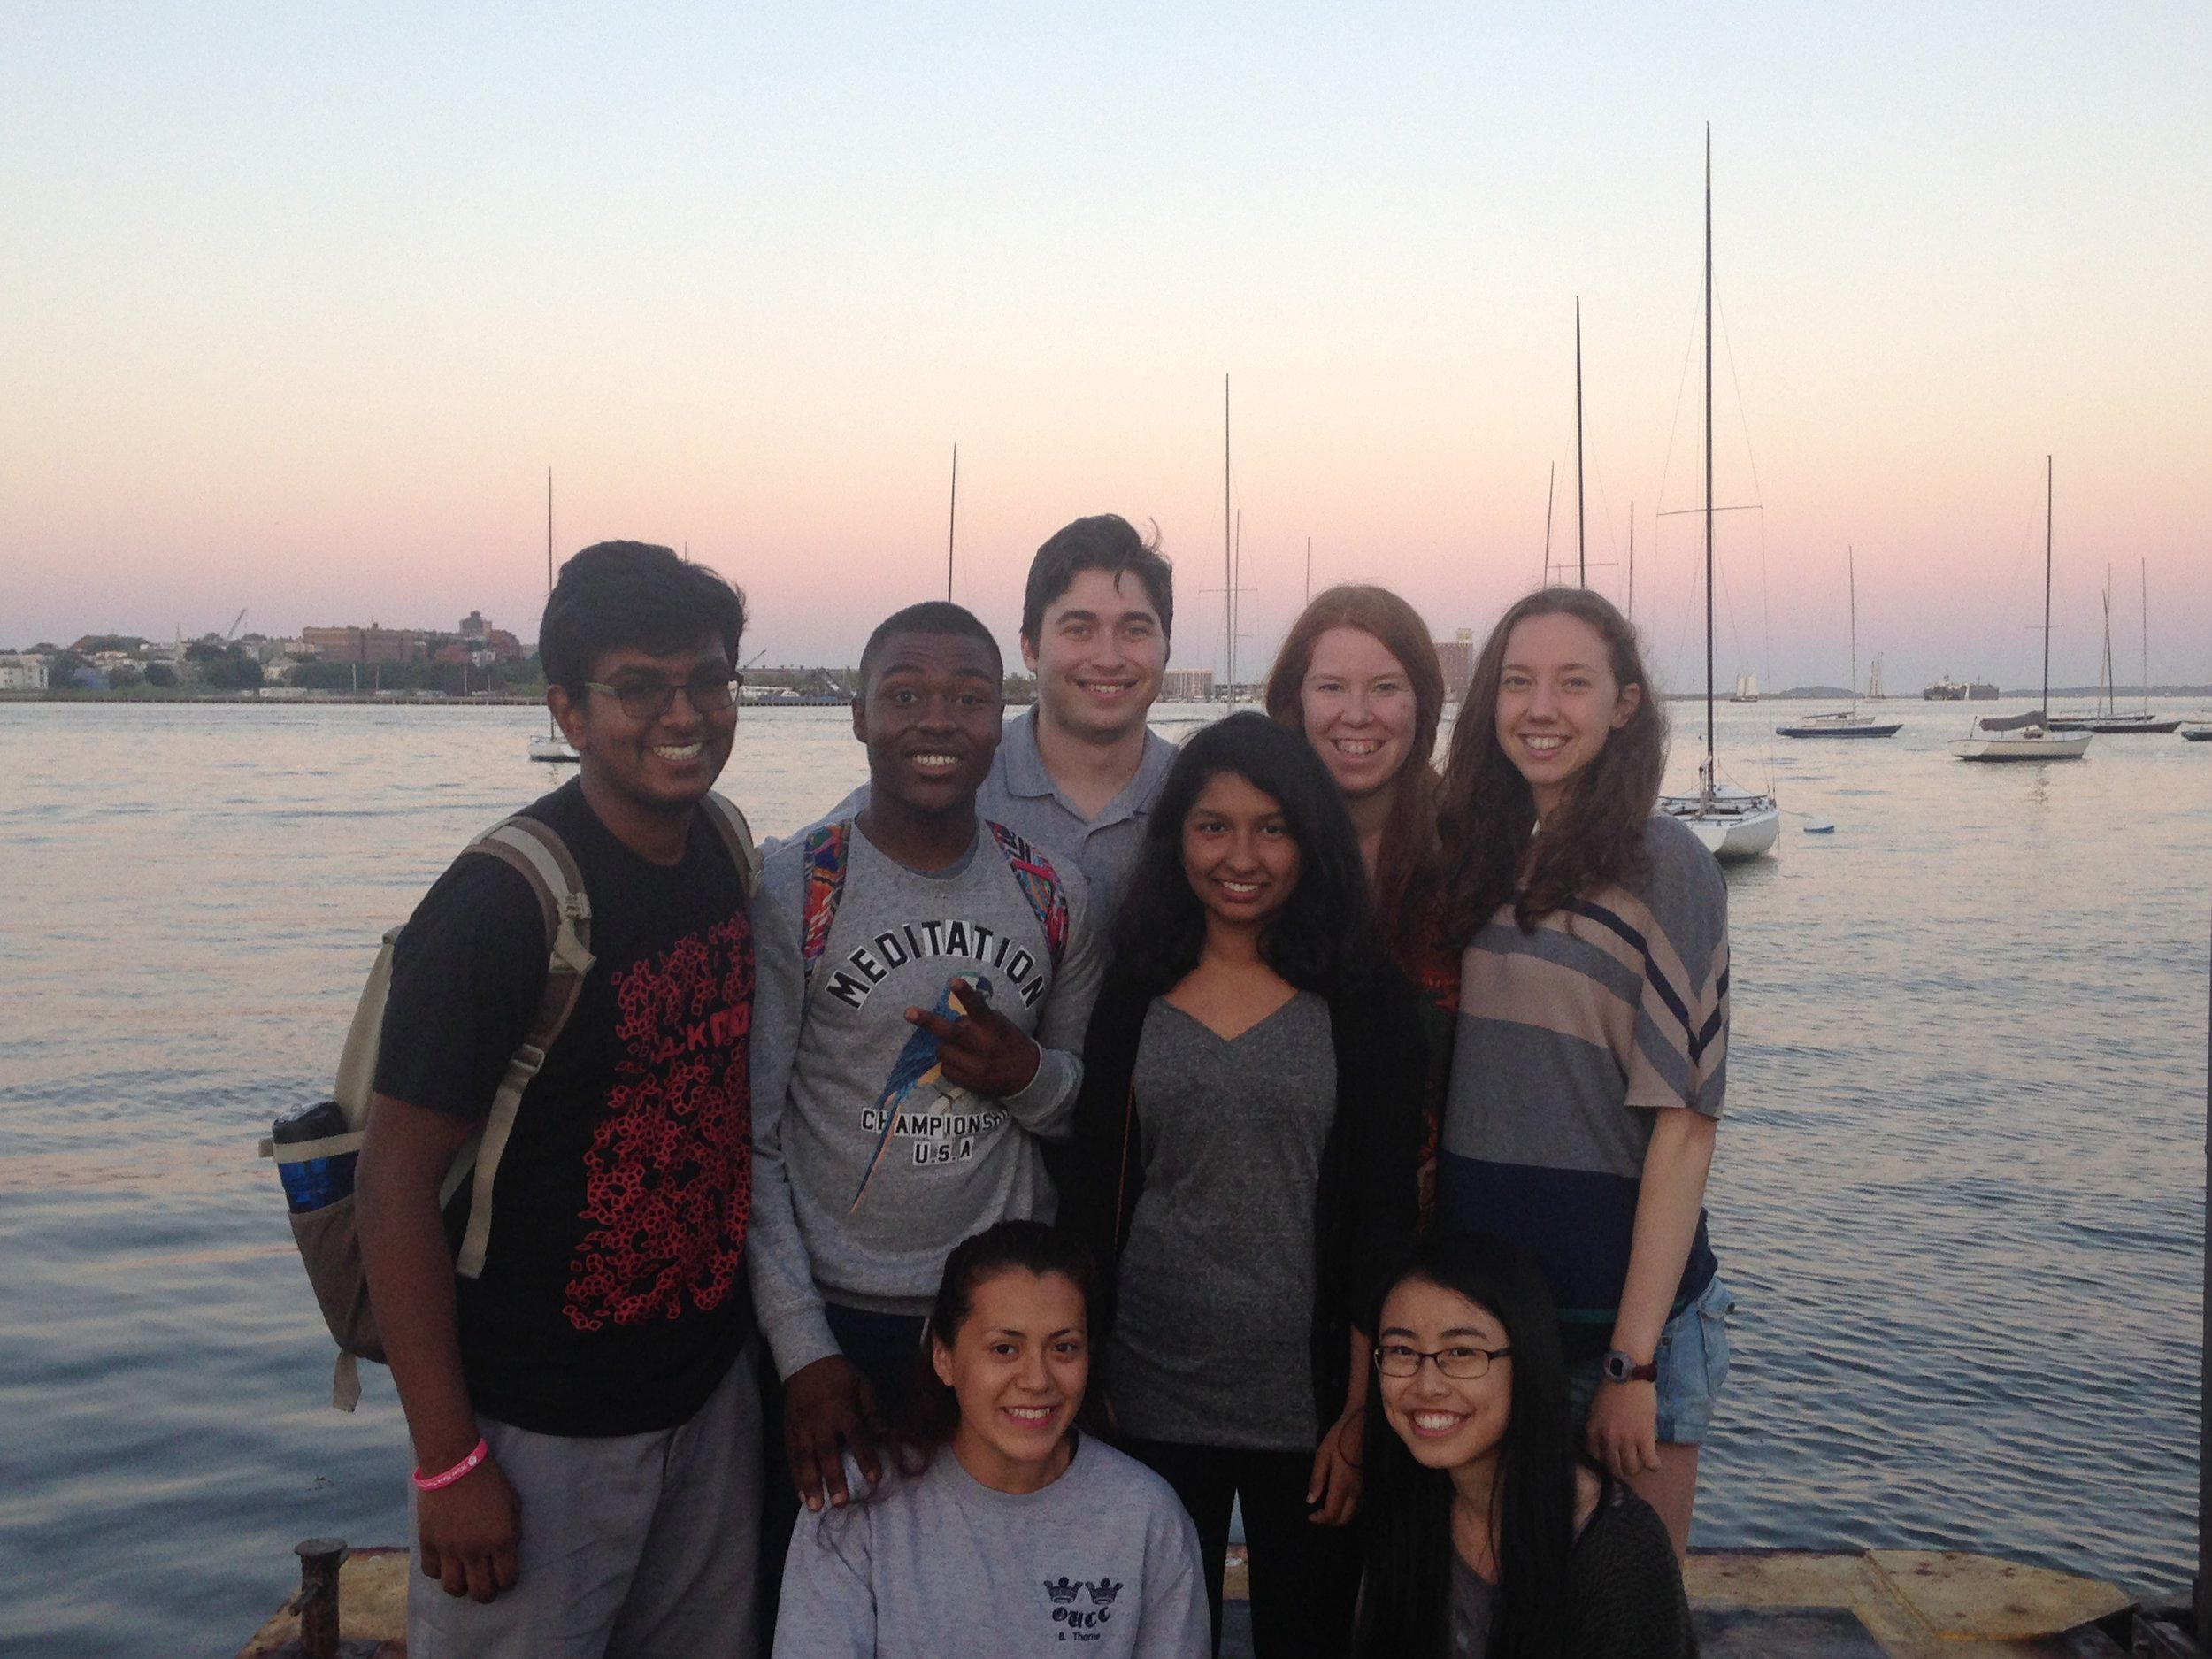 Faija in Boston with Project Rousseau in 2015 where she visited Harvard, Tufts and MIT.